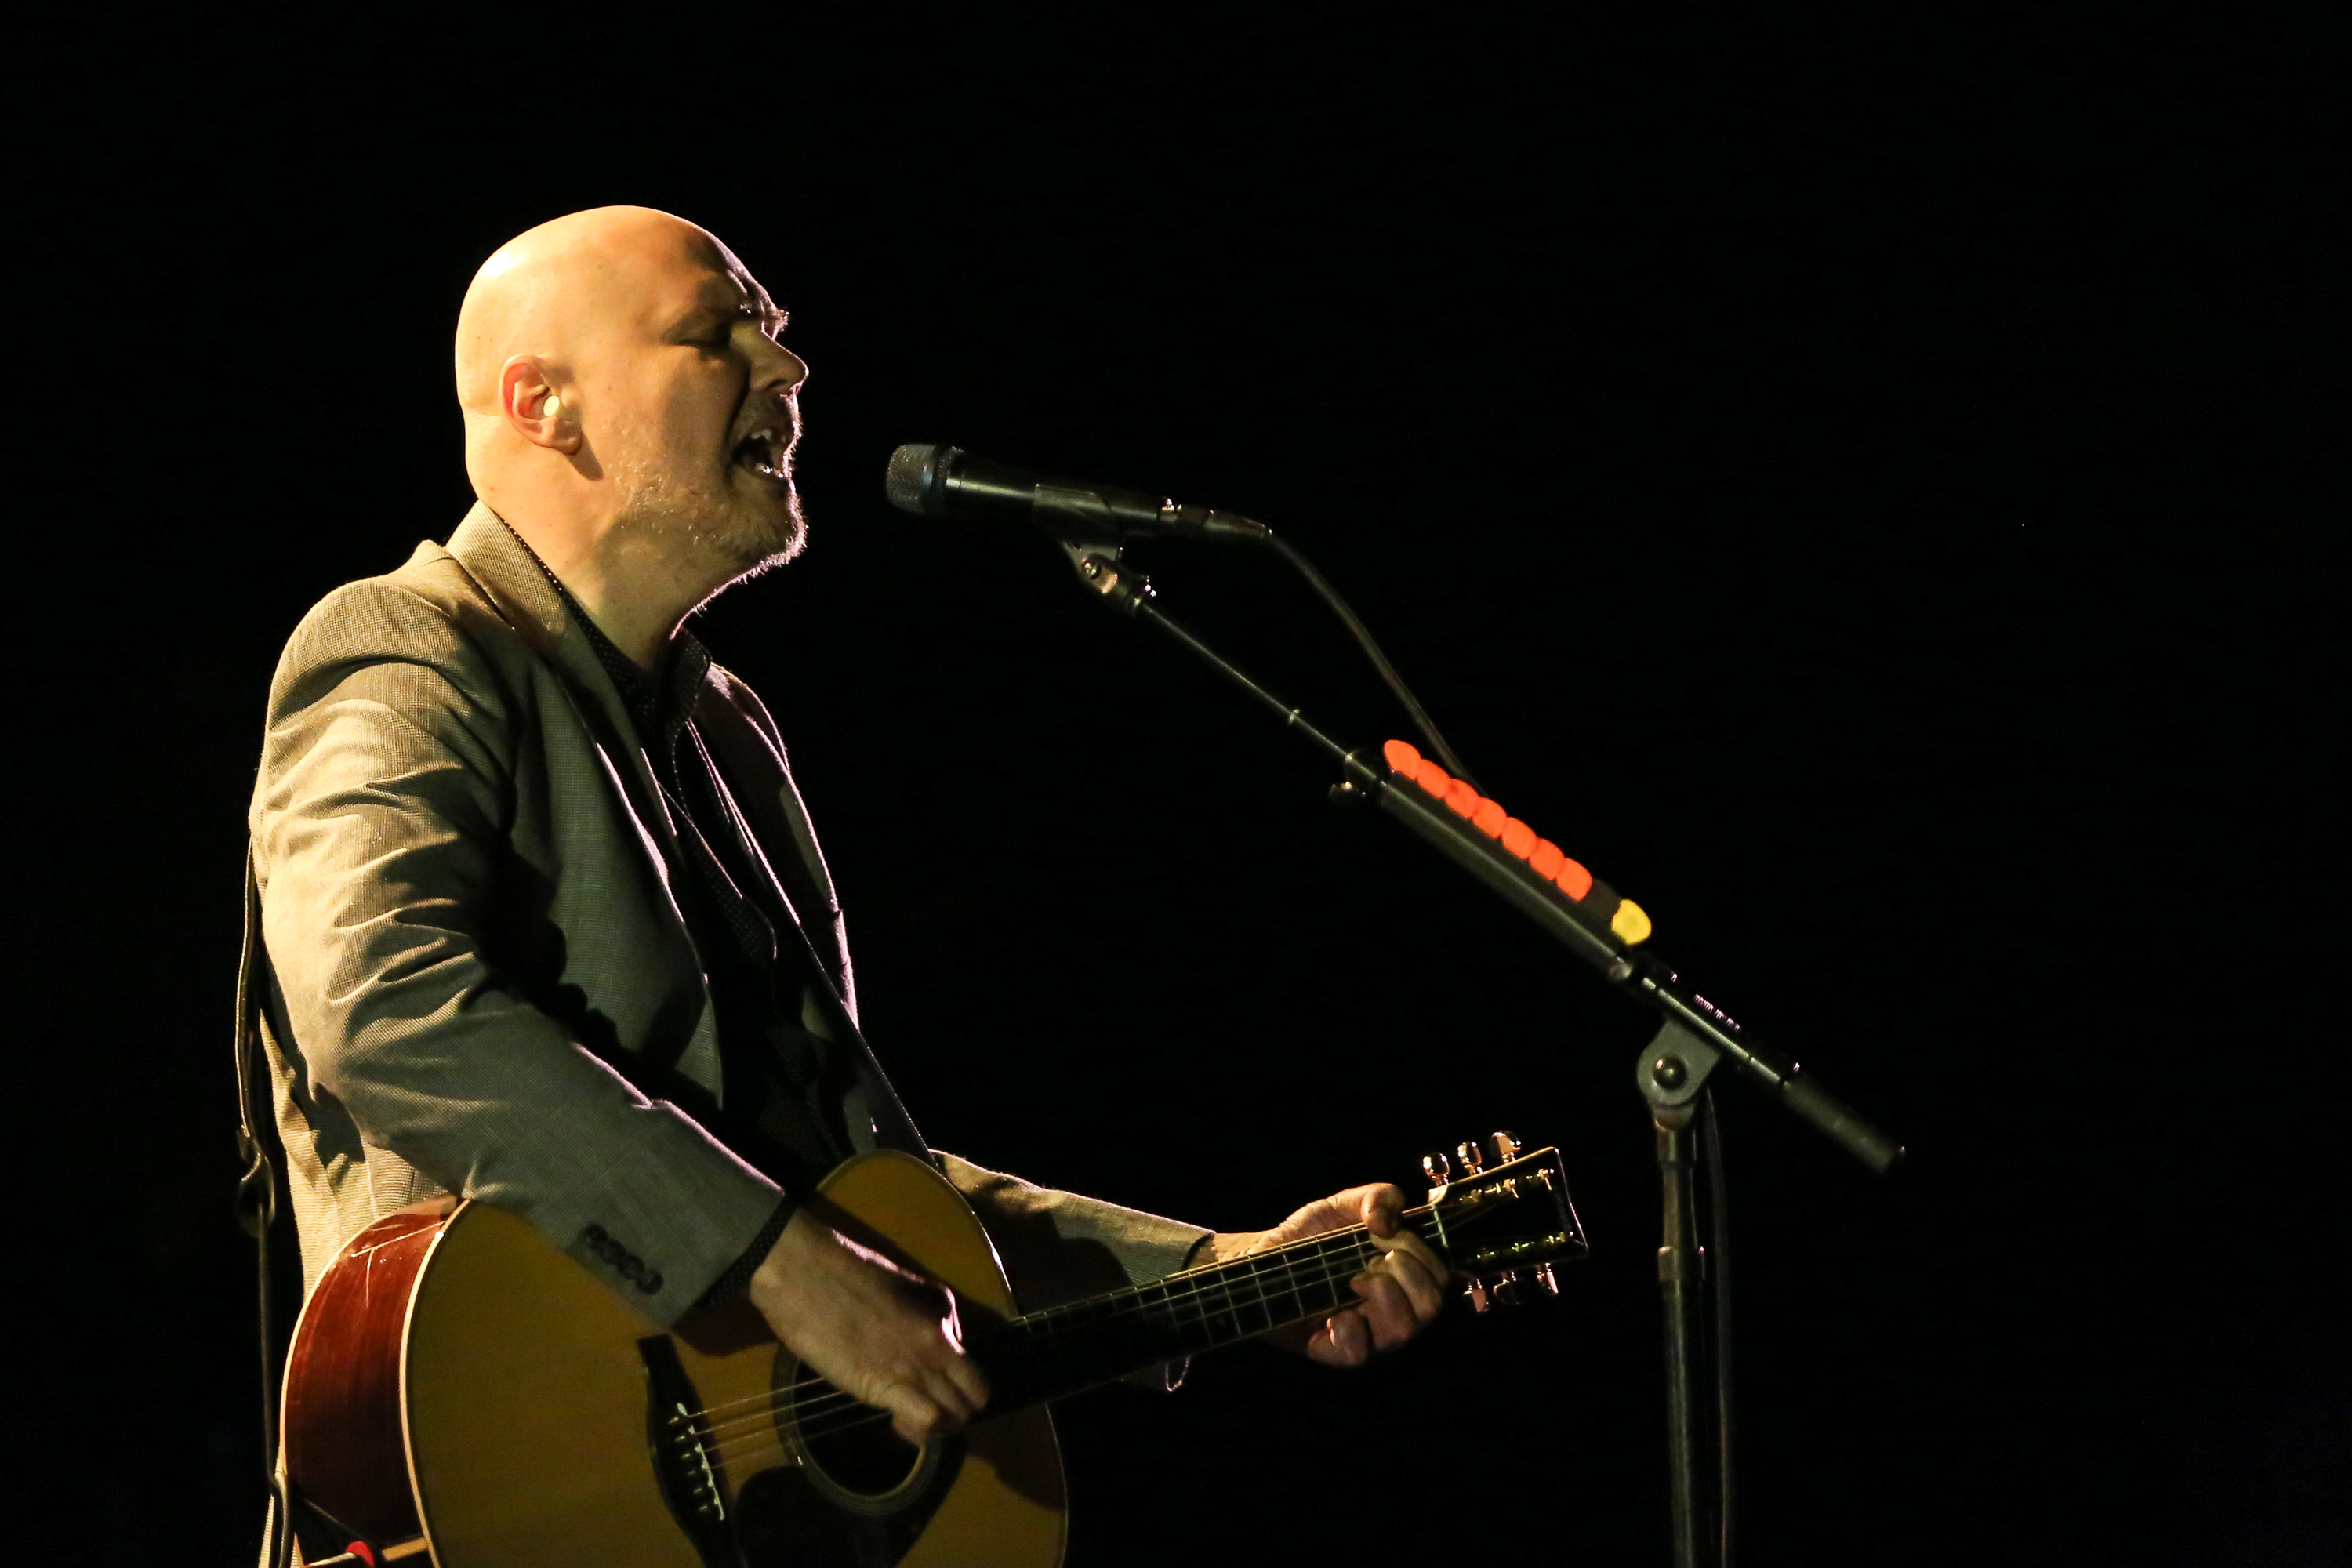 Billy Corgan Takes On President Role at TNA Wrestling